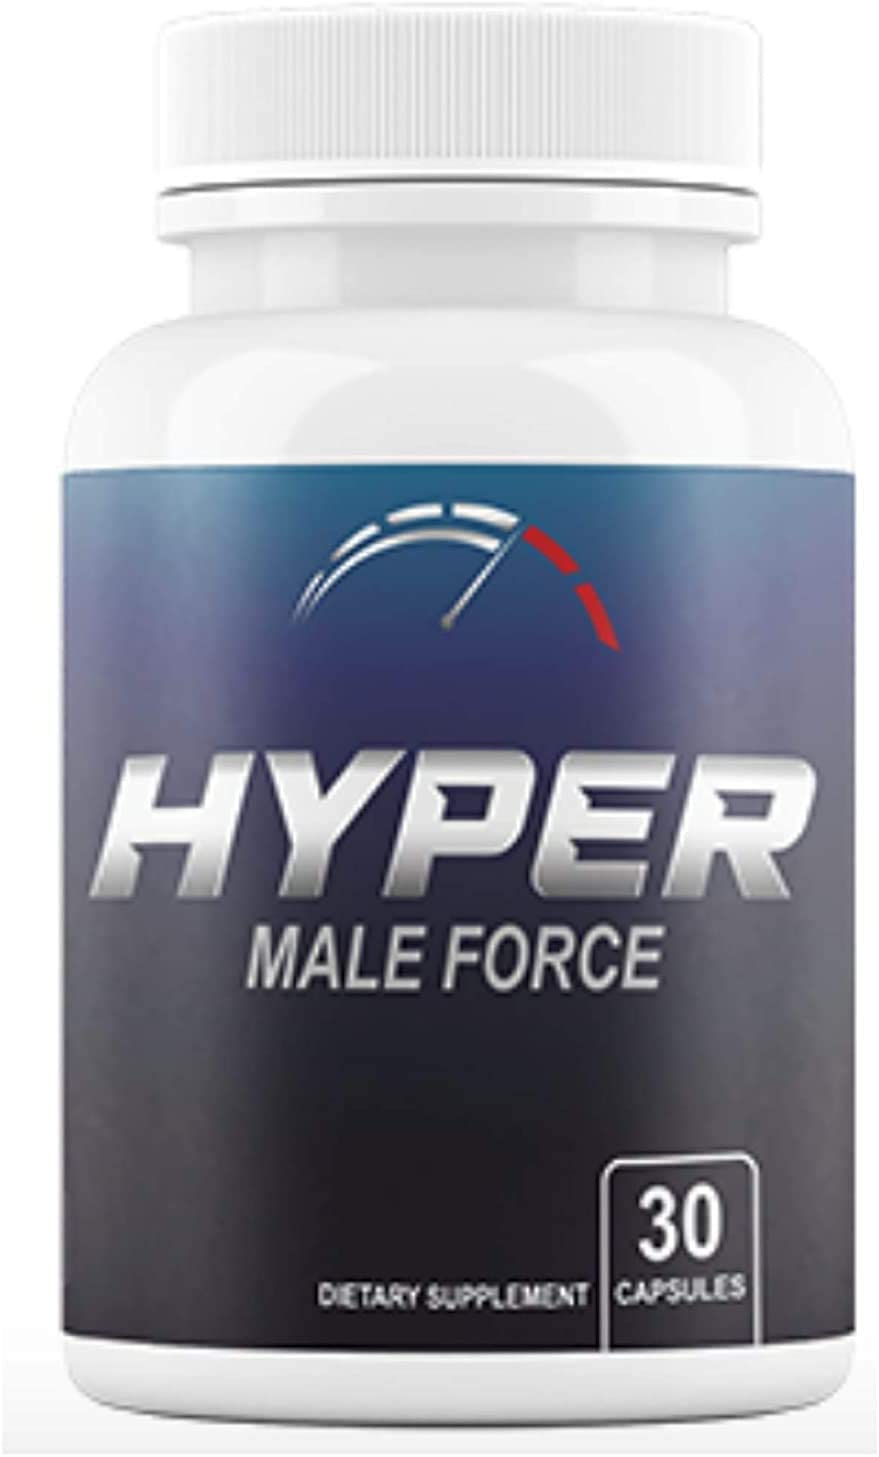 Hyper Male Force co je to?